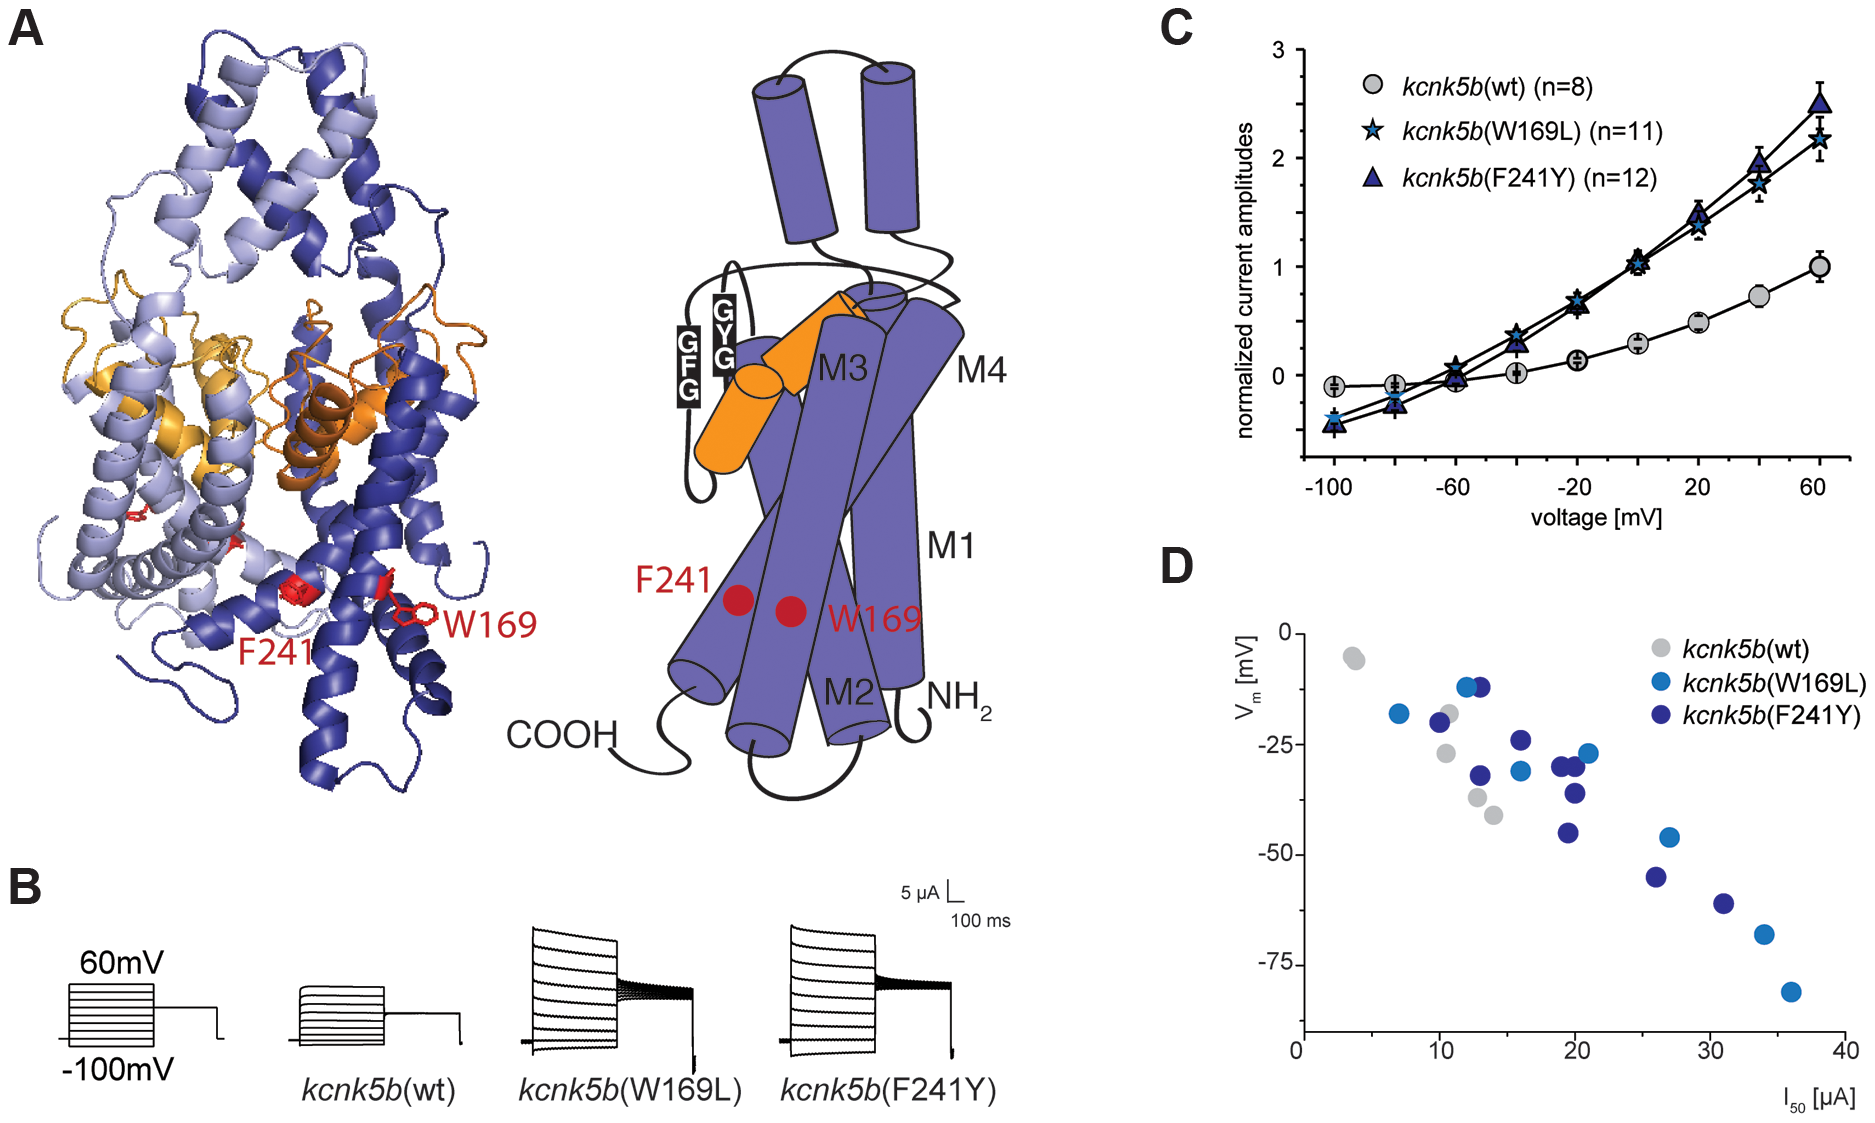 Gain-of-function mutations in <i>kcnk5b</i> affect ionic conduction and lead to hyperpolarization of the cell.